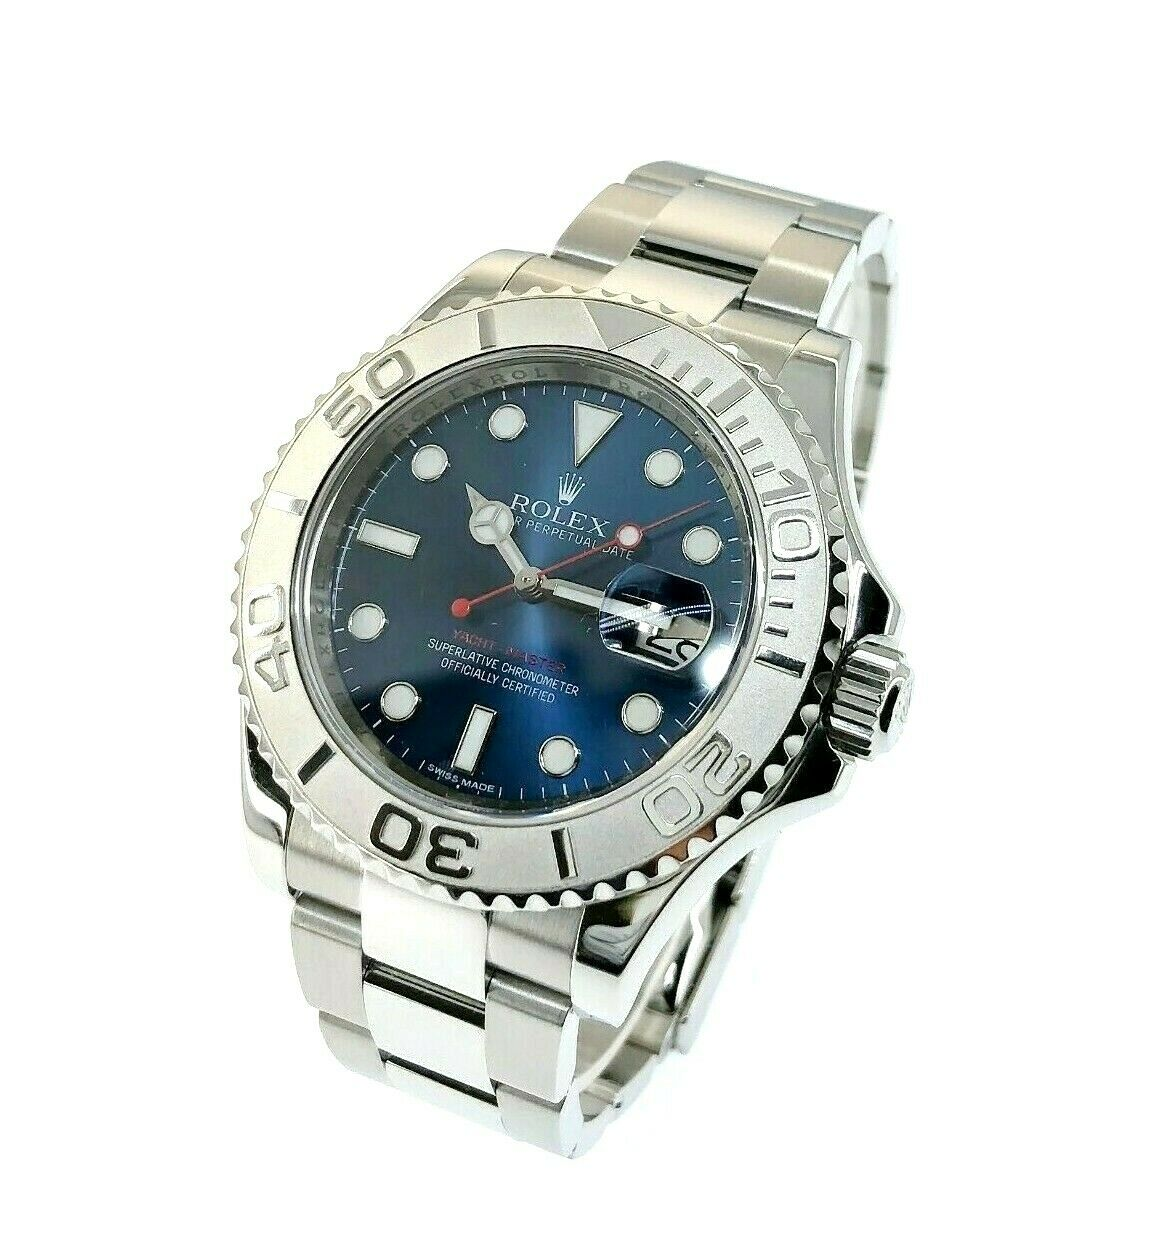 Rolex 40MM Mens Yacht-Master Platinum and Steel Watch Ref #116622 Factory Blue